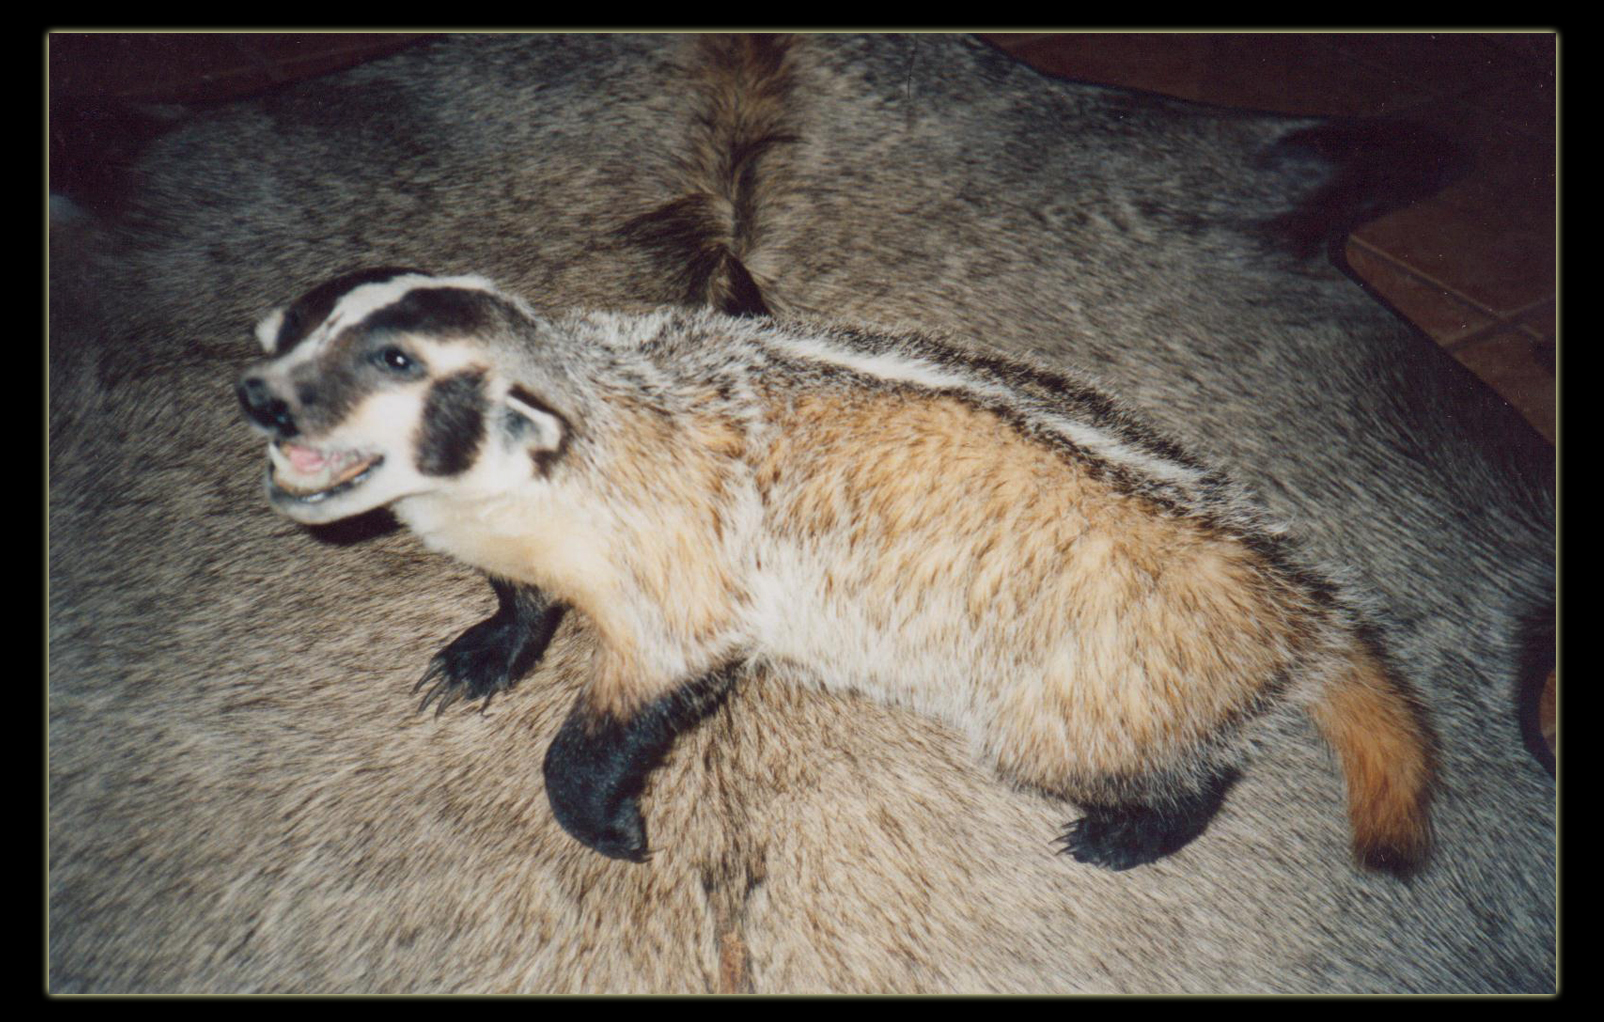 badger on rug